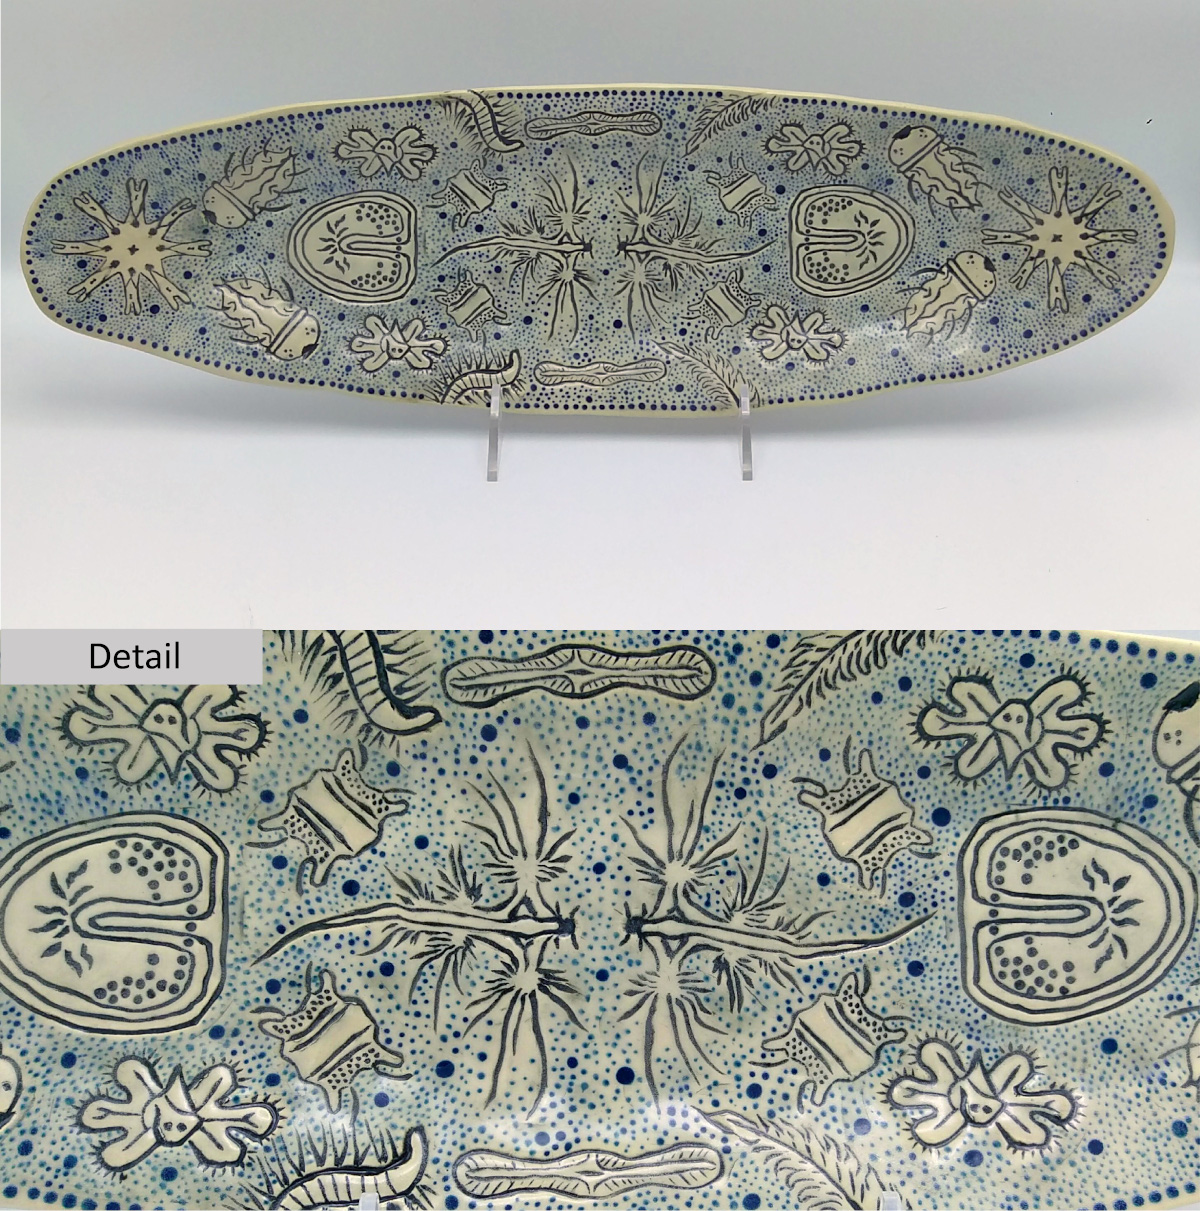 Long oval plate with detailing of various plankton surrounded by tiny blue spots. A closeup of the pattern is shown underneath.